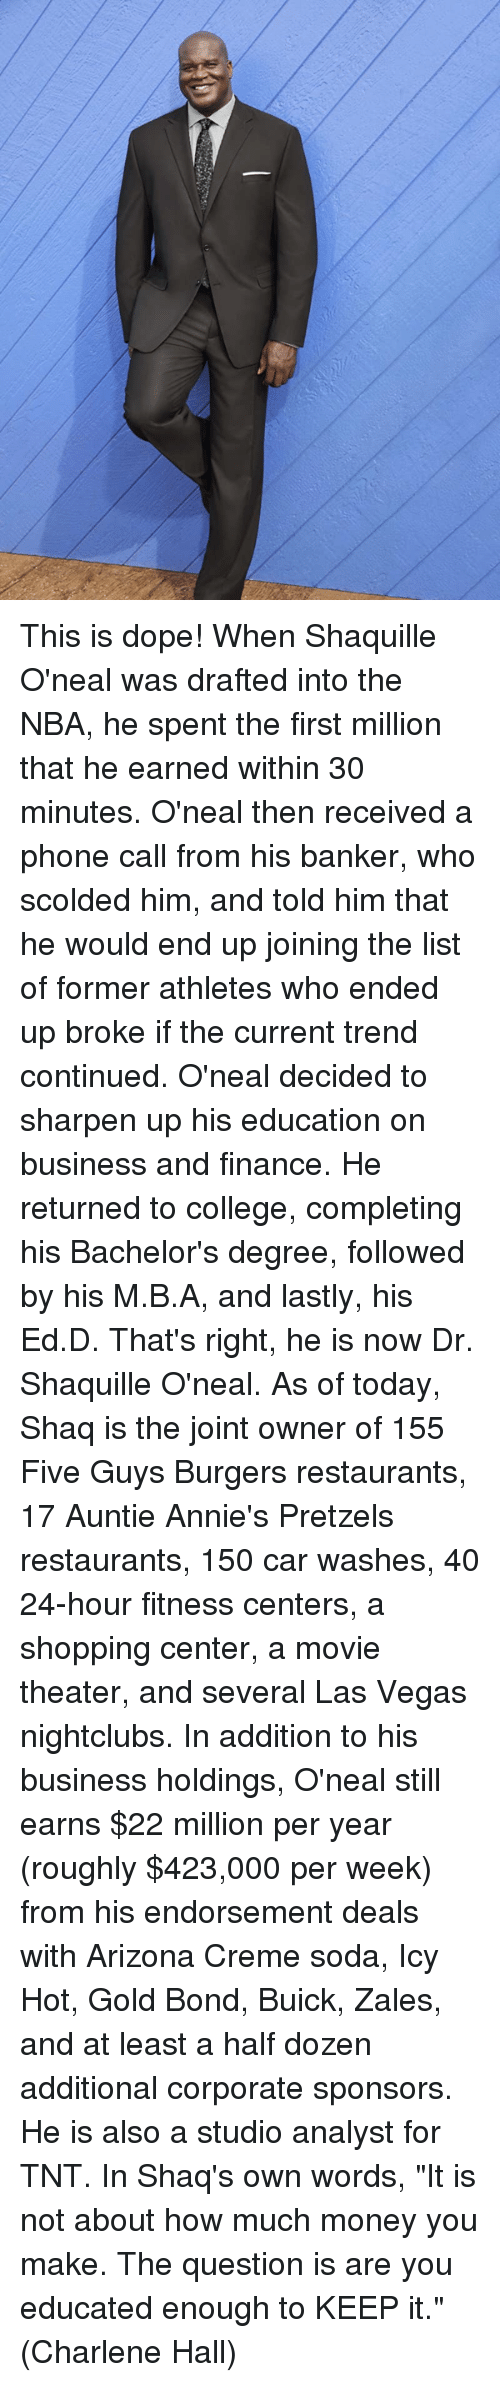 """College, Dope, and Finance: This is dope!  When Shaquille O'neal was drafted into the NBA, he spent the first million that he earned within 30 minutes. O'neal then received a phone call from his banker, who scolded him, and told him that he would end up joining the list of former athletes who ended up broke if the current trend continued.  O'neal decided to sharpen up his education on business and finance. He returned to college, completing his Bachelor's degree, followed by his M.B.A, and lastly, his Ed.D. That's right, he is now Dr. Shaquille O'neal.  As of today, Shaq is the joint owner of 155 Five Guys Burgers restaurants, 17 Auntie Annie's Pretzels restaurants, 150 car washes, 40 24-hour fitness centers, a shopping center, a movie theater, and several Las Vegas nightclubs.  In addition to his business holdings, O'neal still earns $22 million per year (roughly $423,000 per week) from his endorsement deals with Arizona Creme soda, Icy Hot, Gold Bond, Buick, Zales, and at least a half dozen additional corporate sponsors. He is also a studio analyst for TNT.  In Shaq's own words, """"It is not about how much money you make. The question is are you educated enough to KEEP it.""""  (Charlene Hall)"""